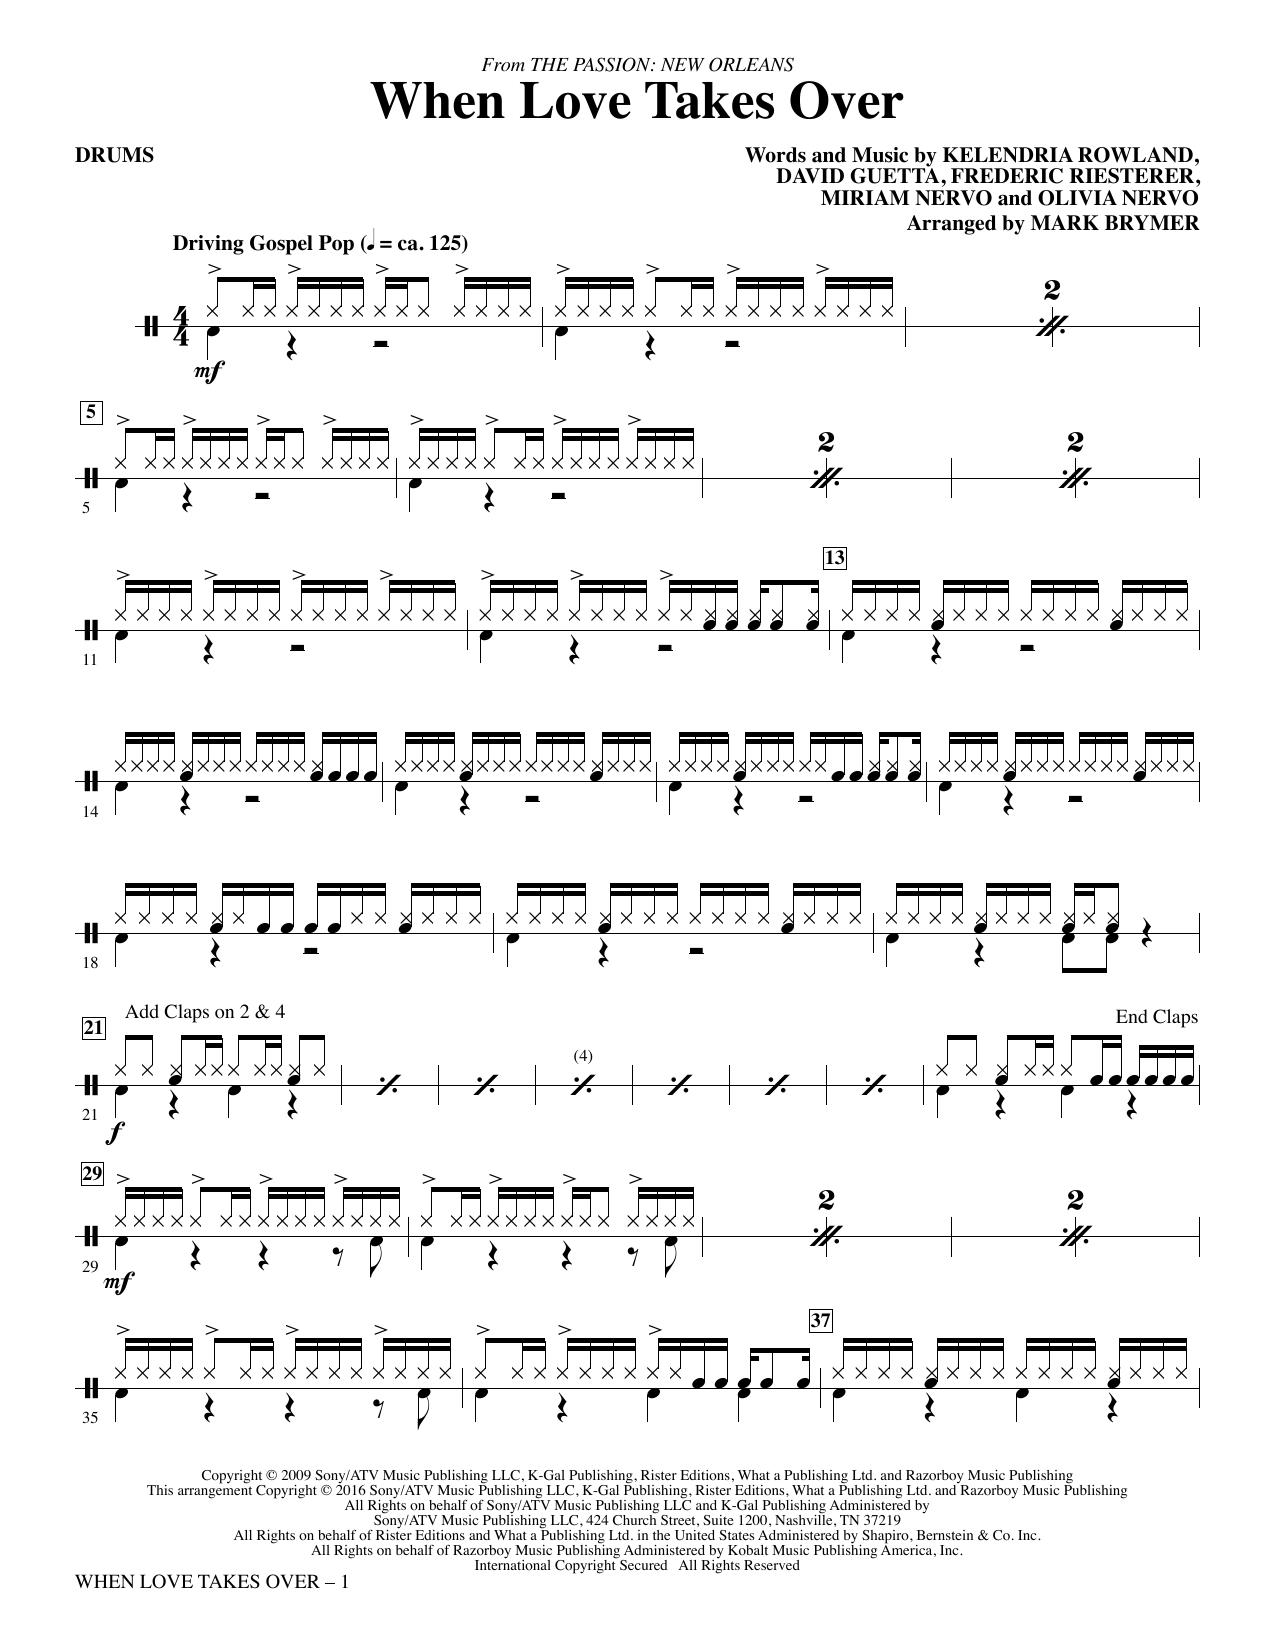 When Love Takes Over (from The Passion: New Orleans) - Drums Sheet Music